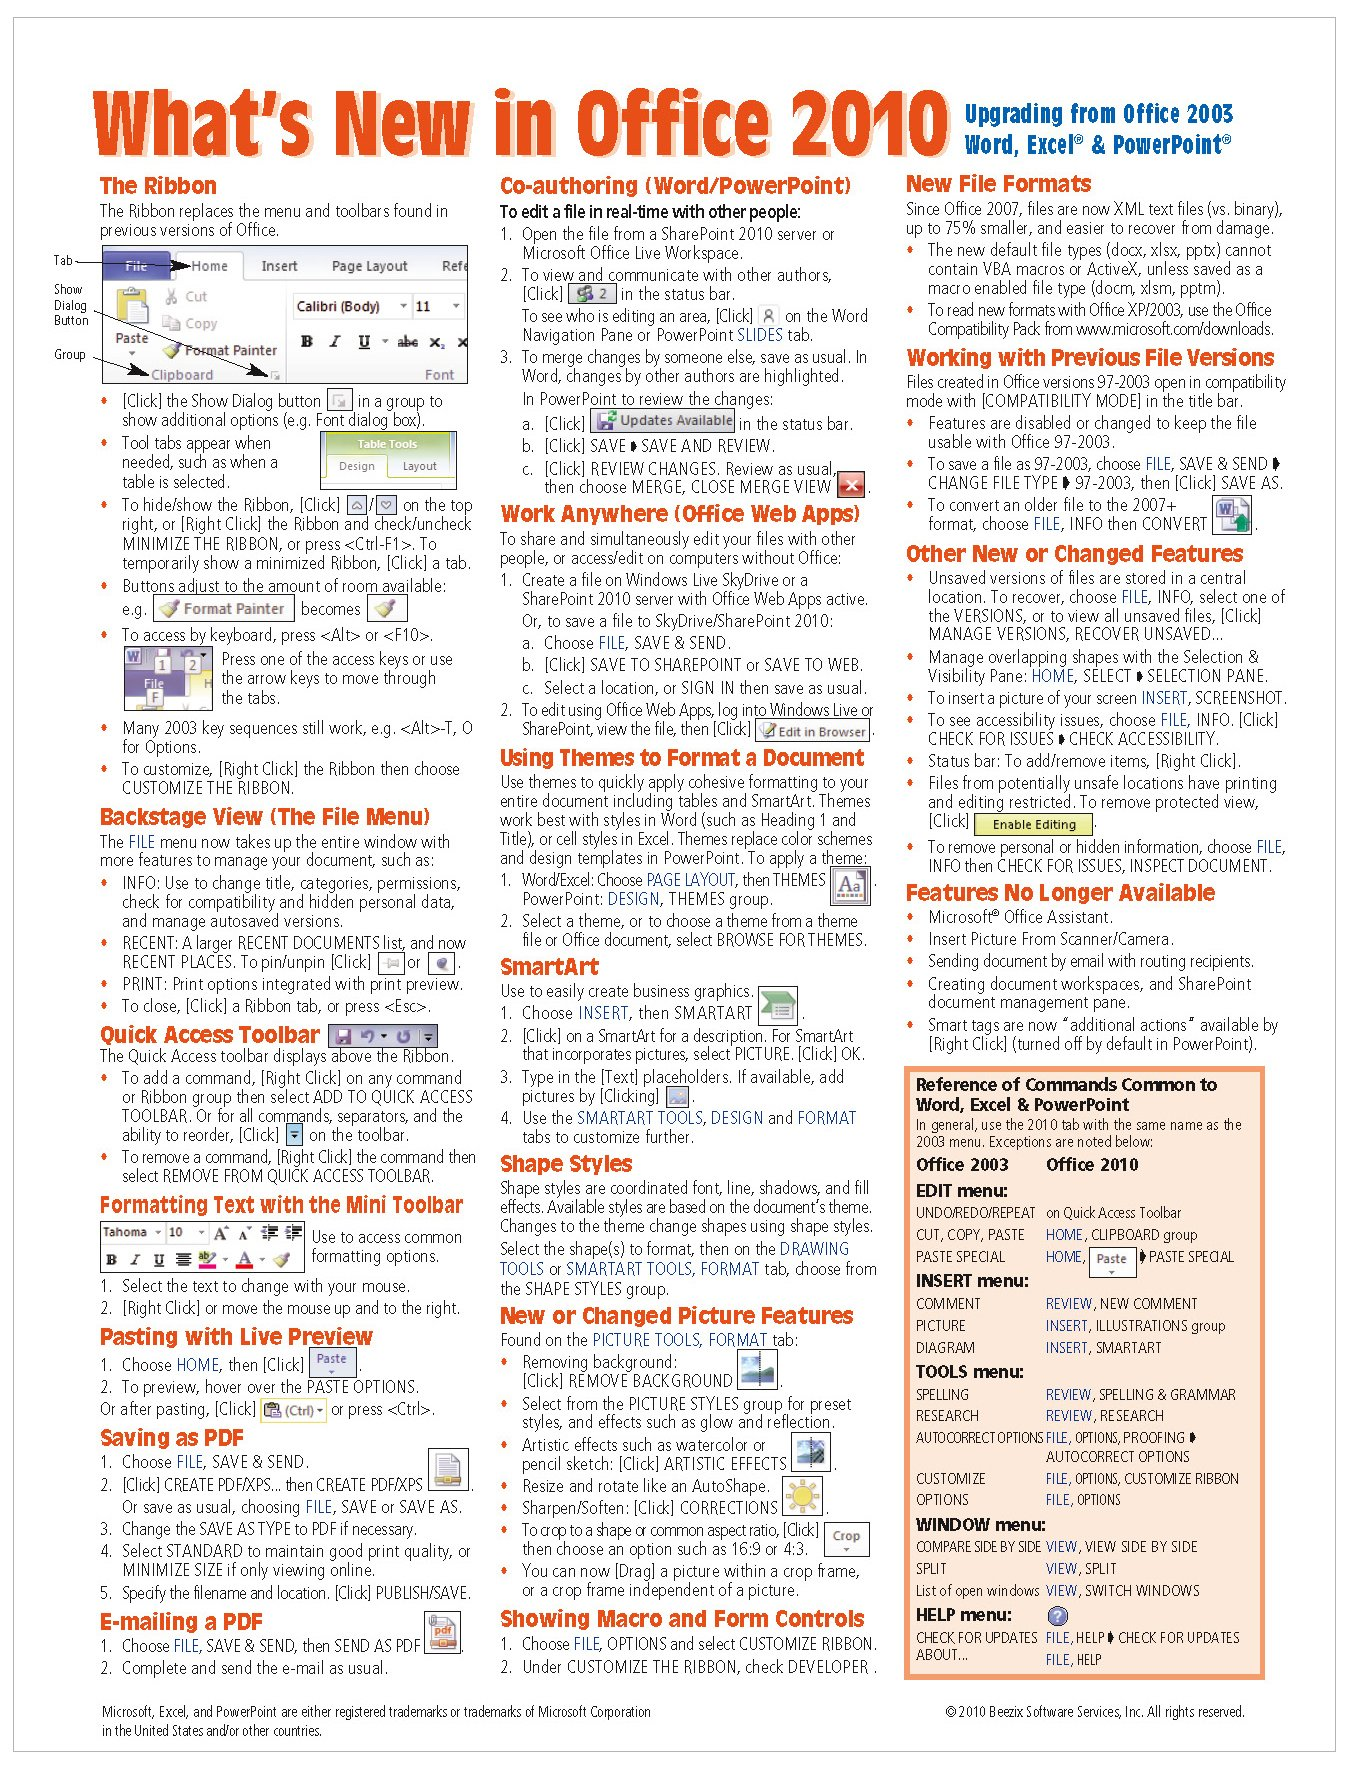 What's New in Microsoft Office 2010 (from 2003) Quick Reference Guide (Cheat Sheet of New Features & Instructions - Laminated Guide) PDF